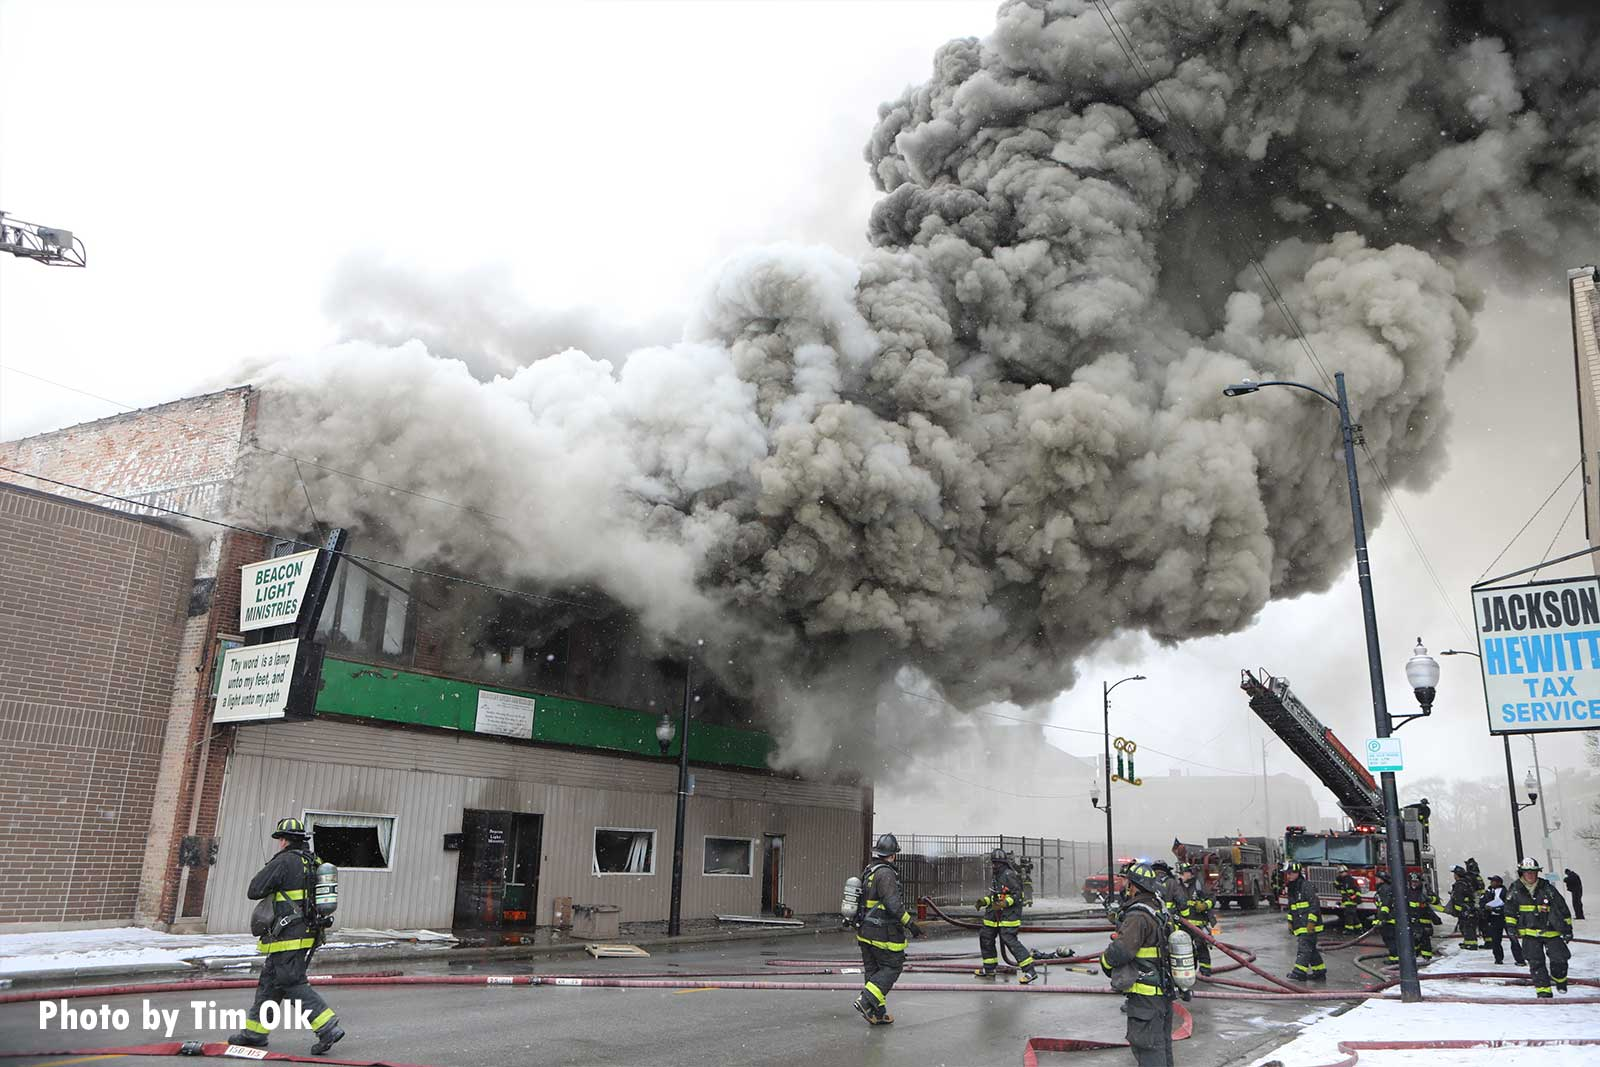 Chicago firefighters and hoselines at scene, with smoke billowing from the fire building